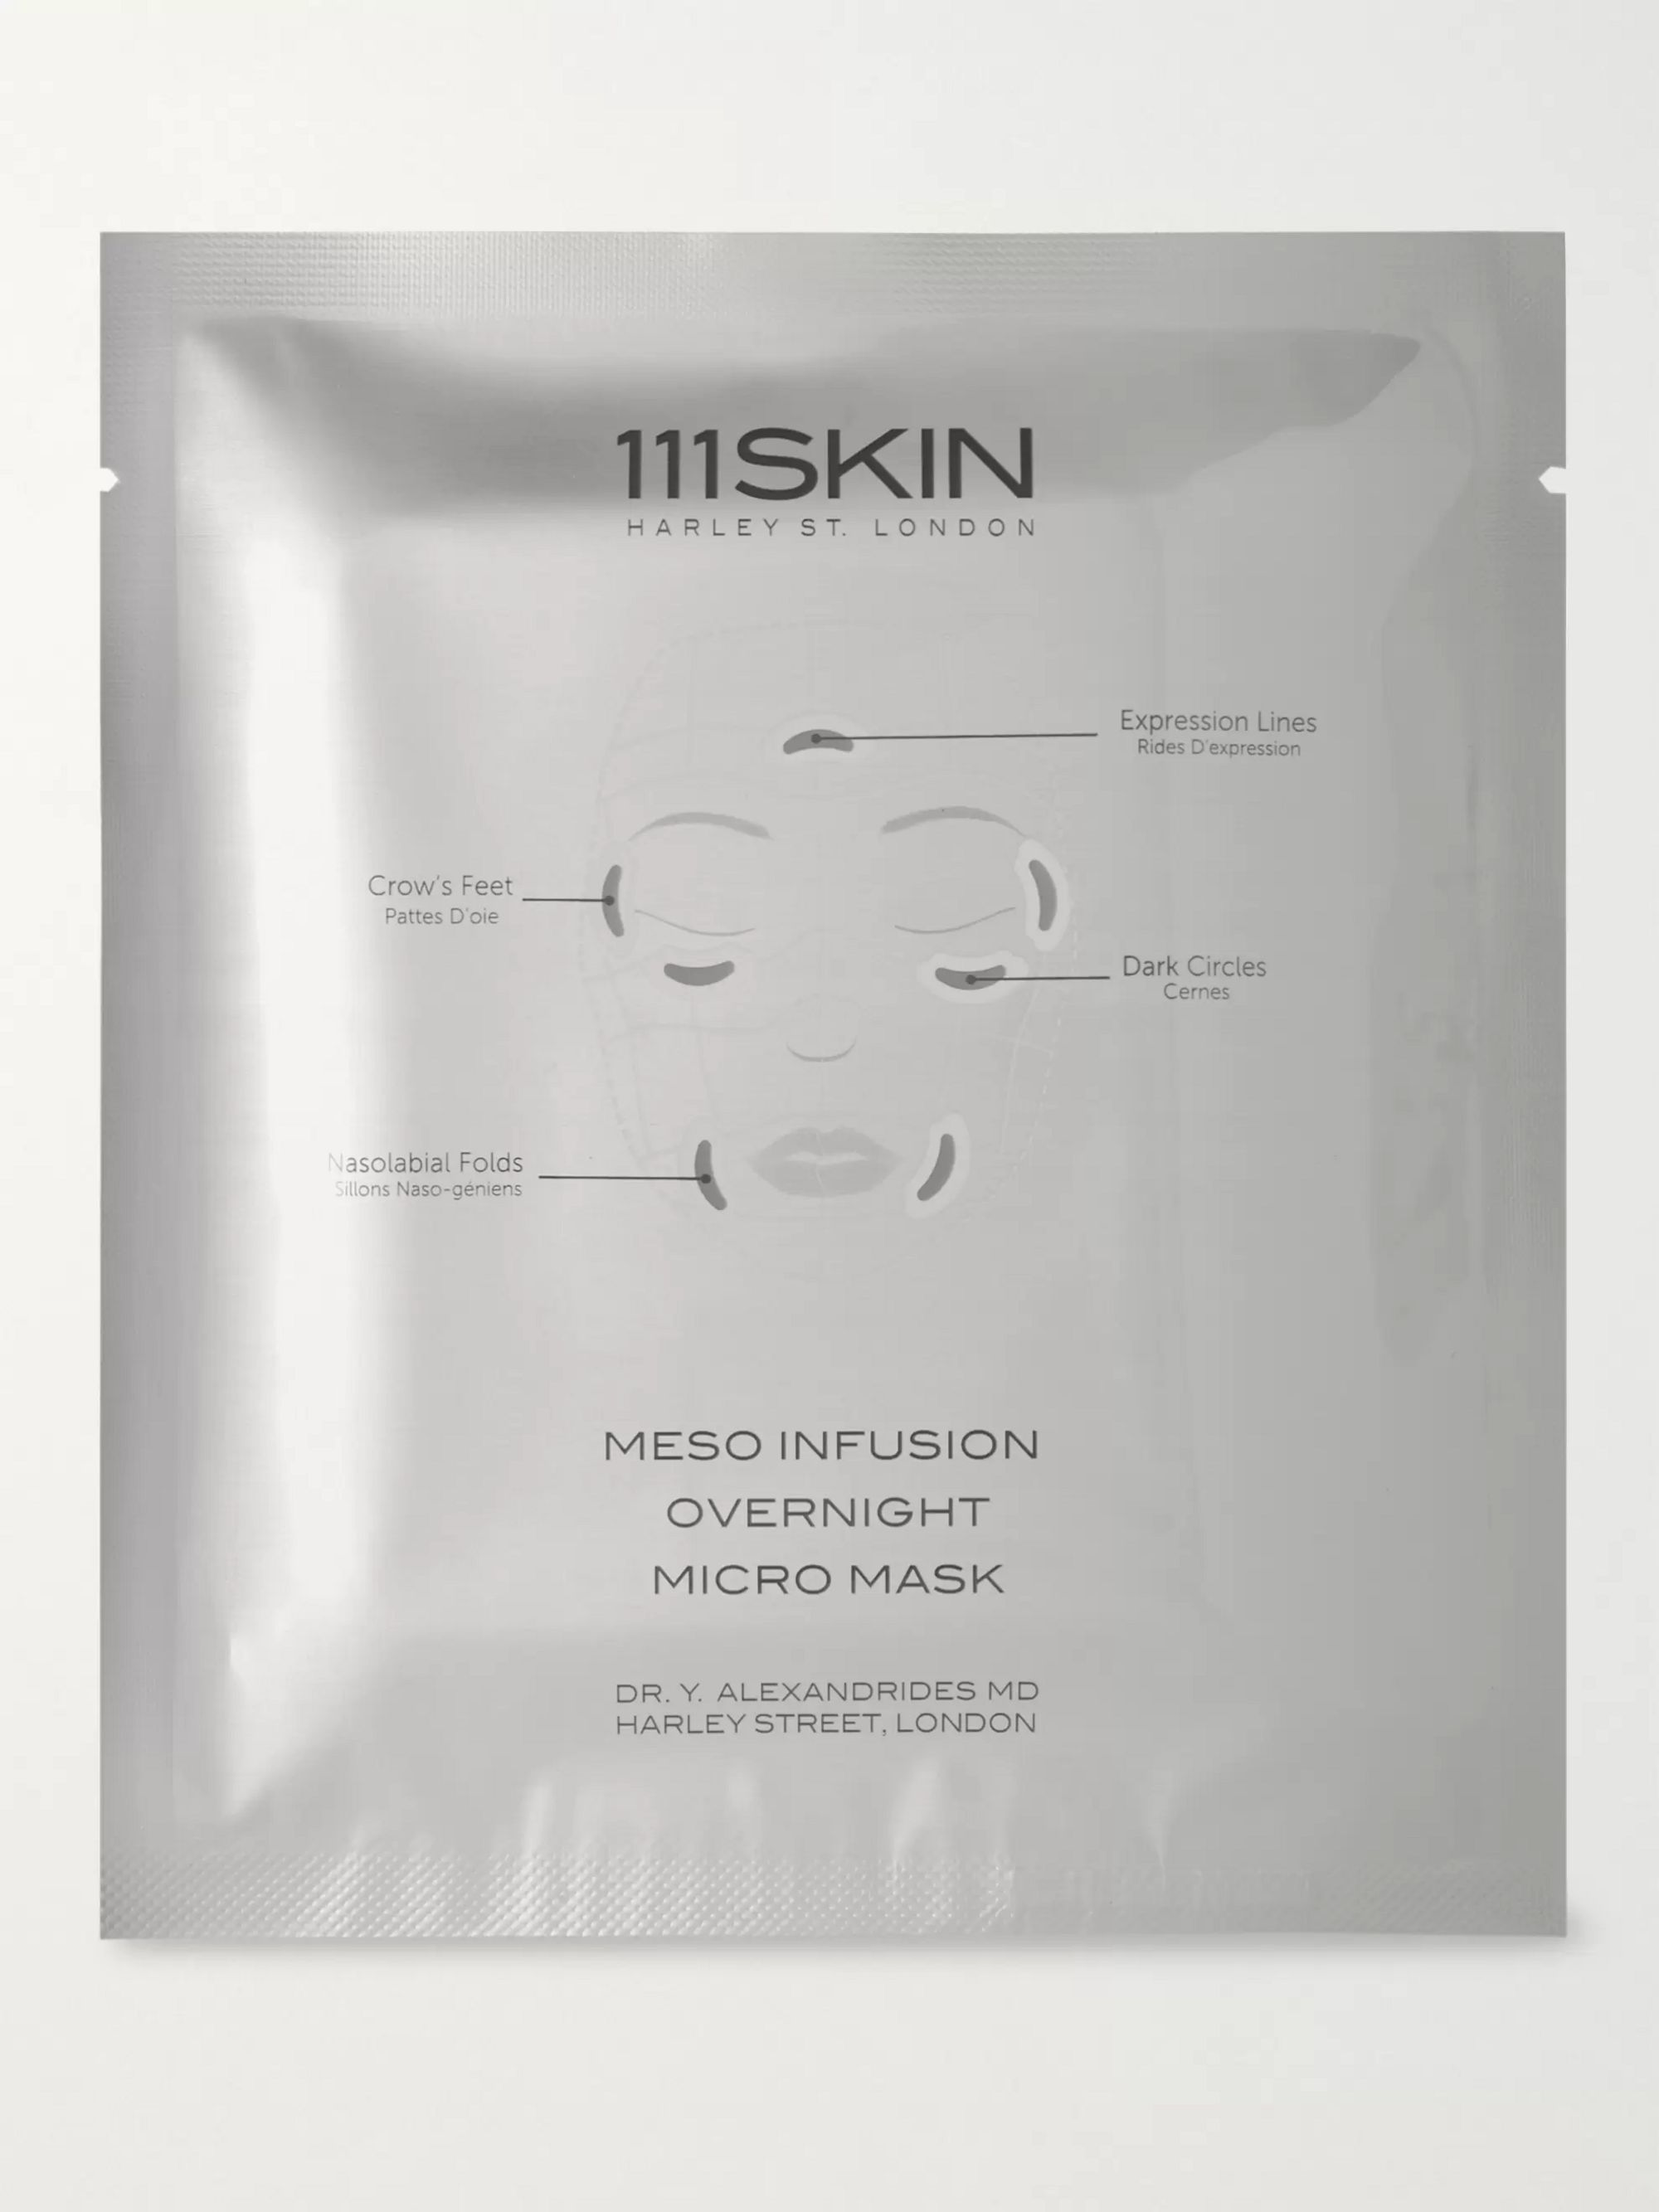 111SKIN Meso Infusion Overnight Micro Mask, 4 X 16g